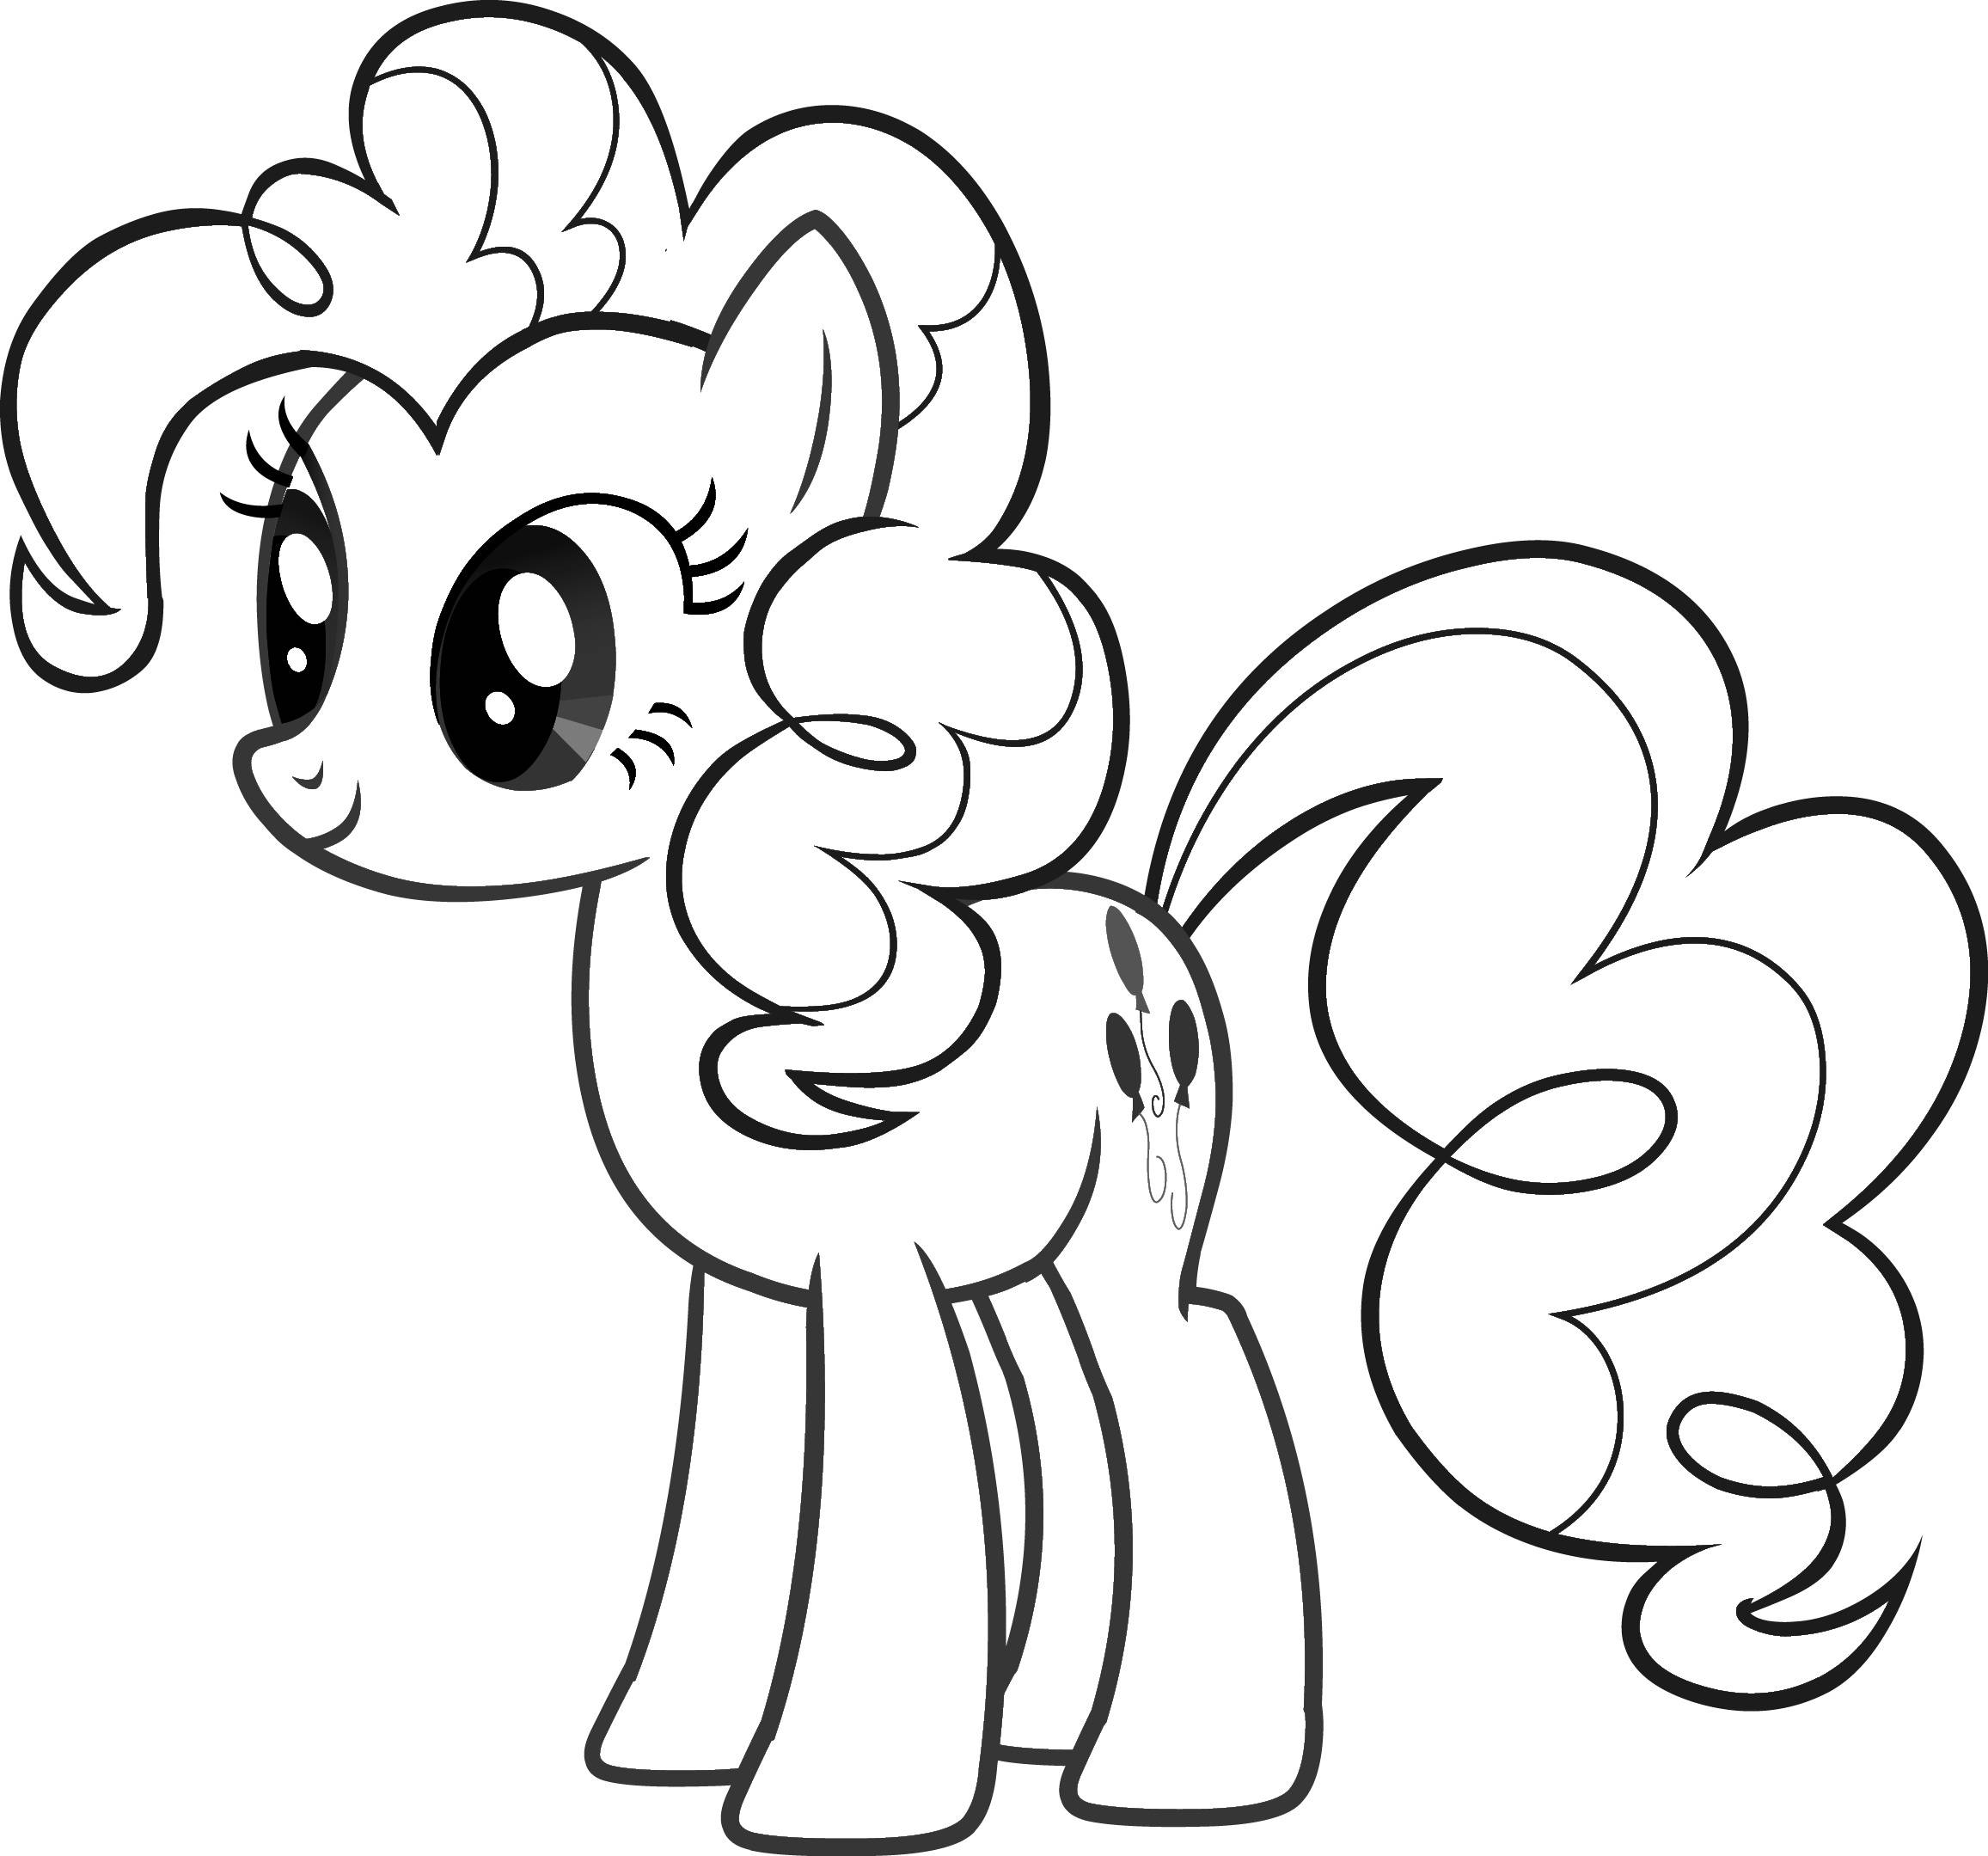 Refreshing image intended for free printable my little pony coloring pages